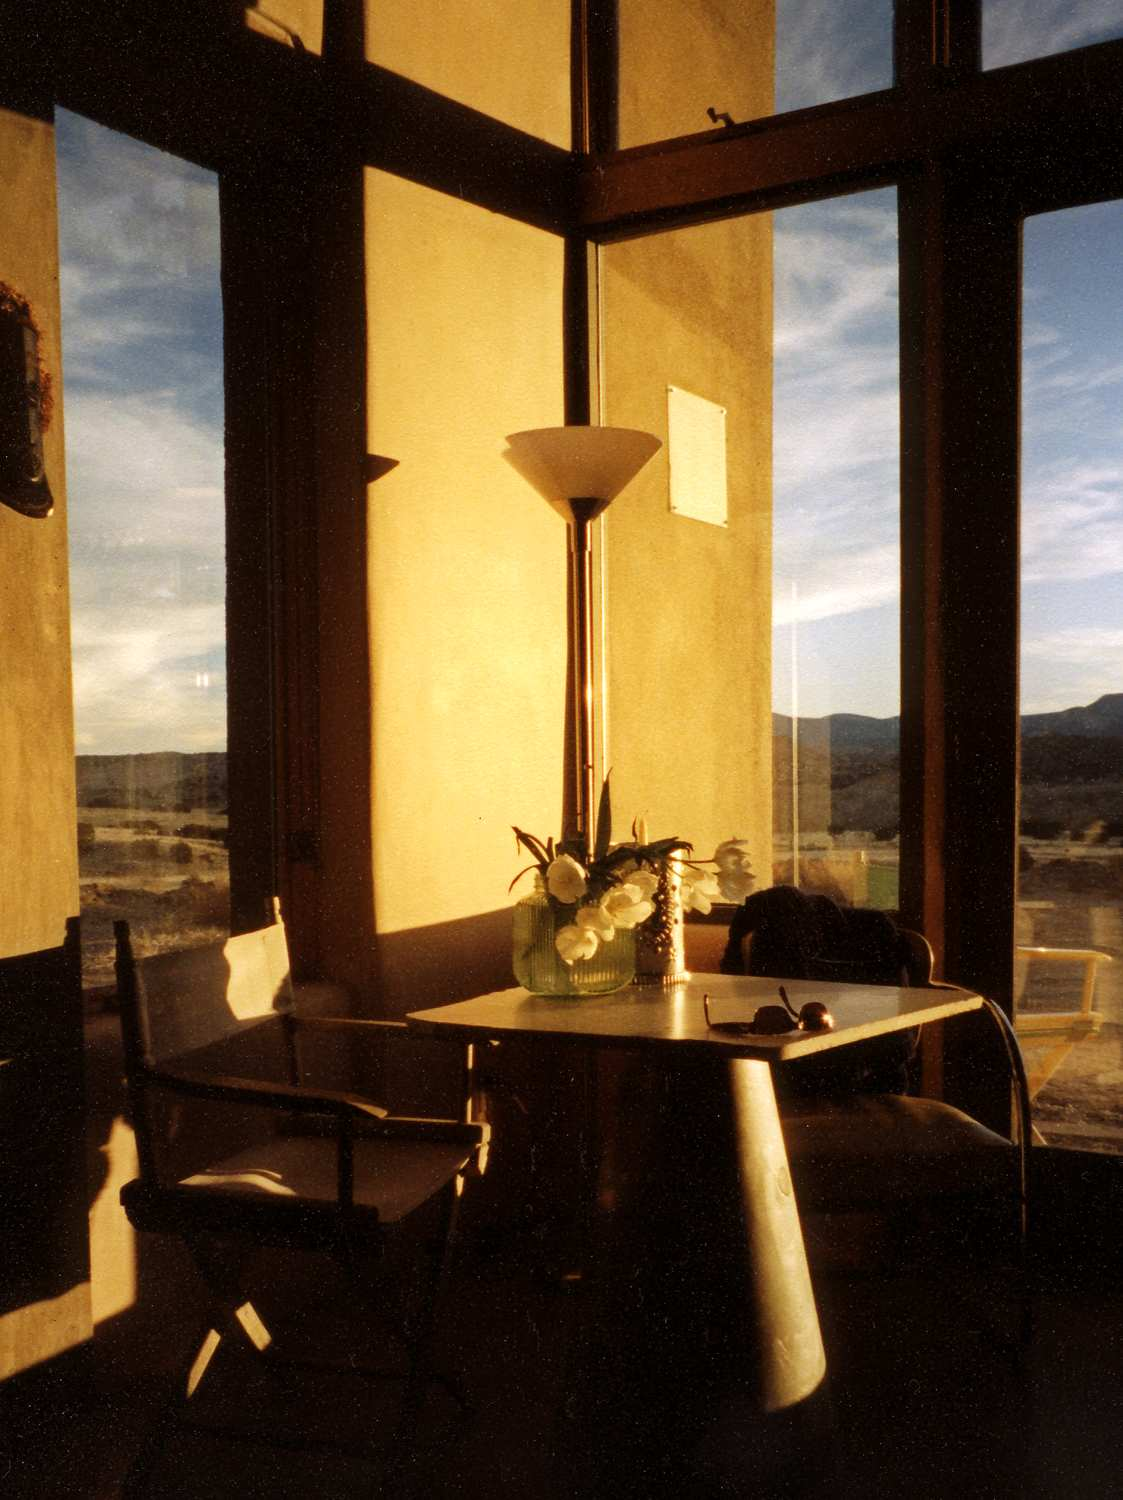 Dining room in winter light, looking out over the valley.